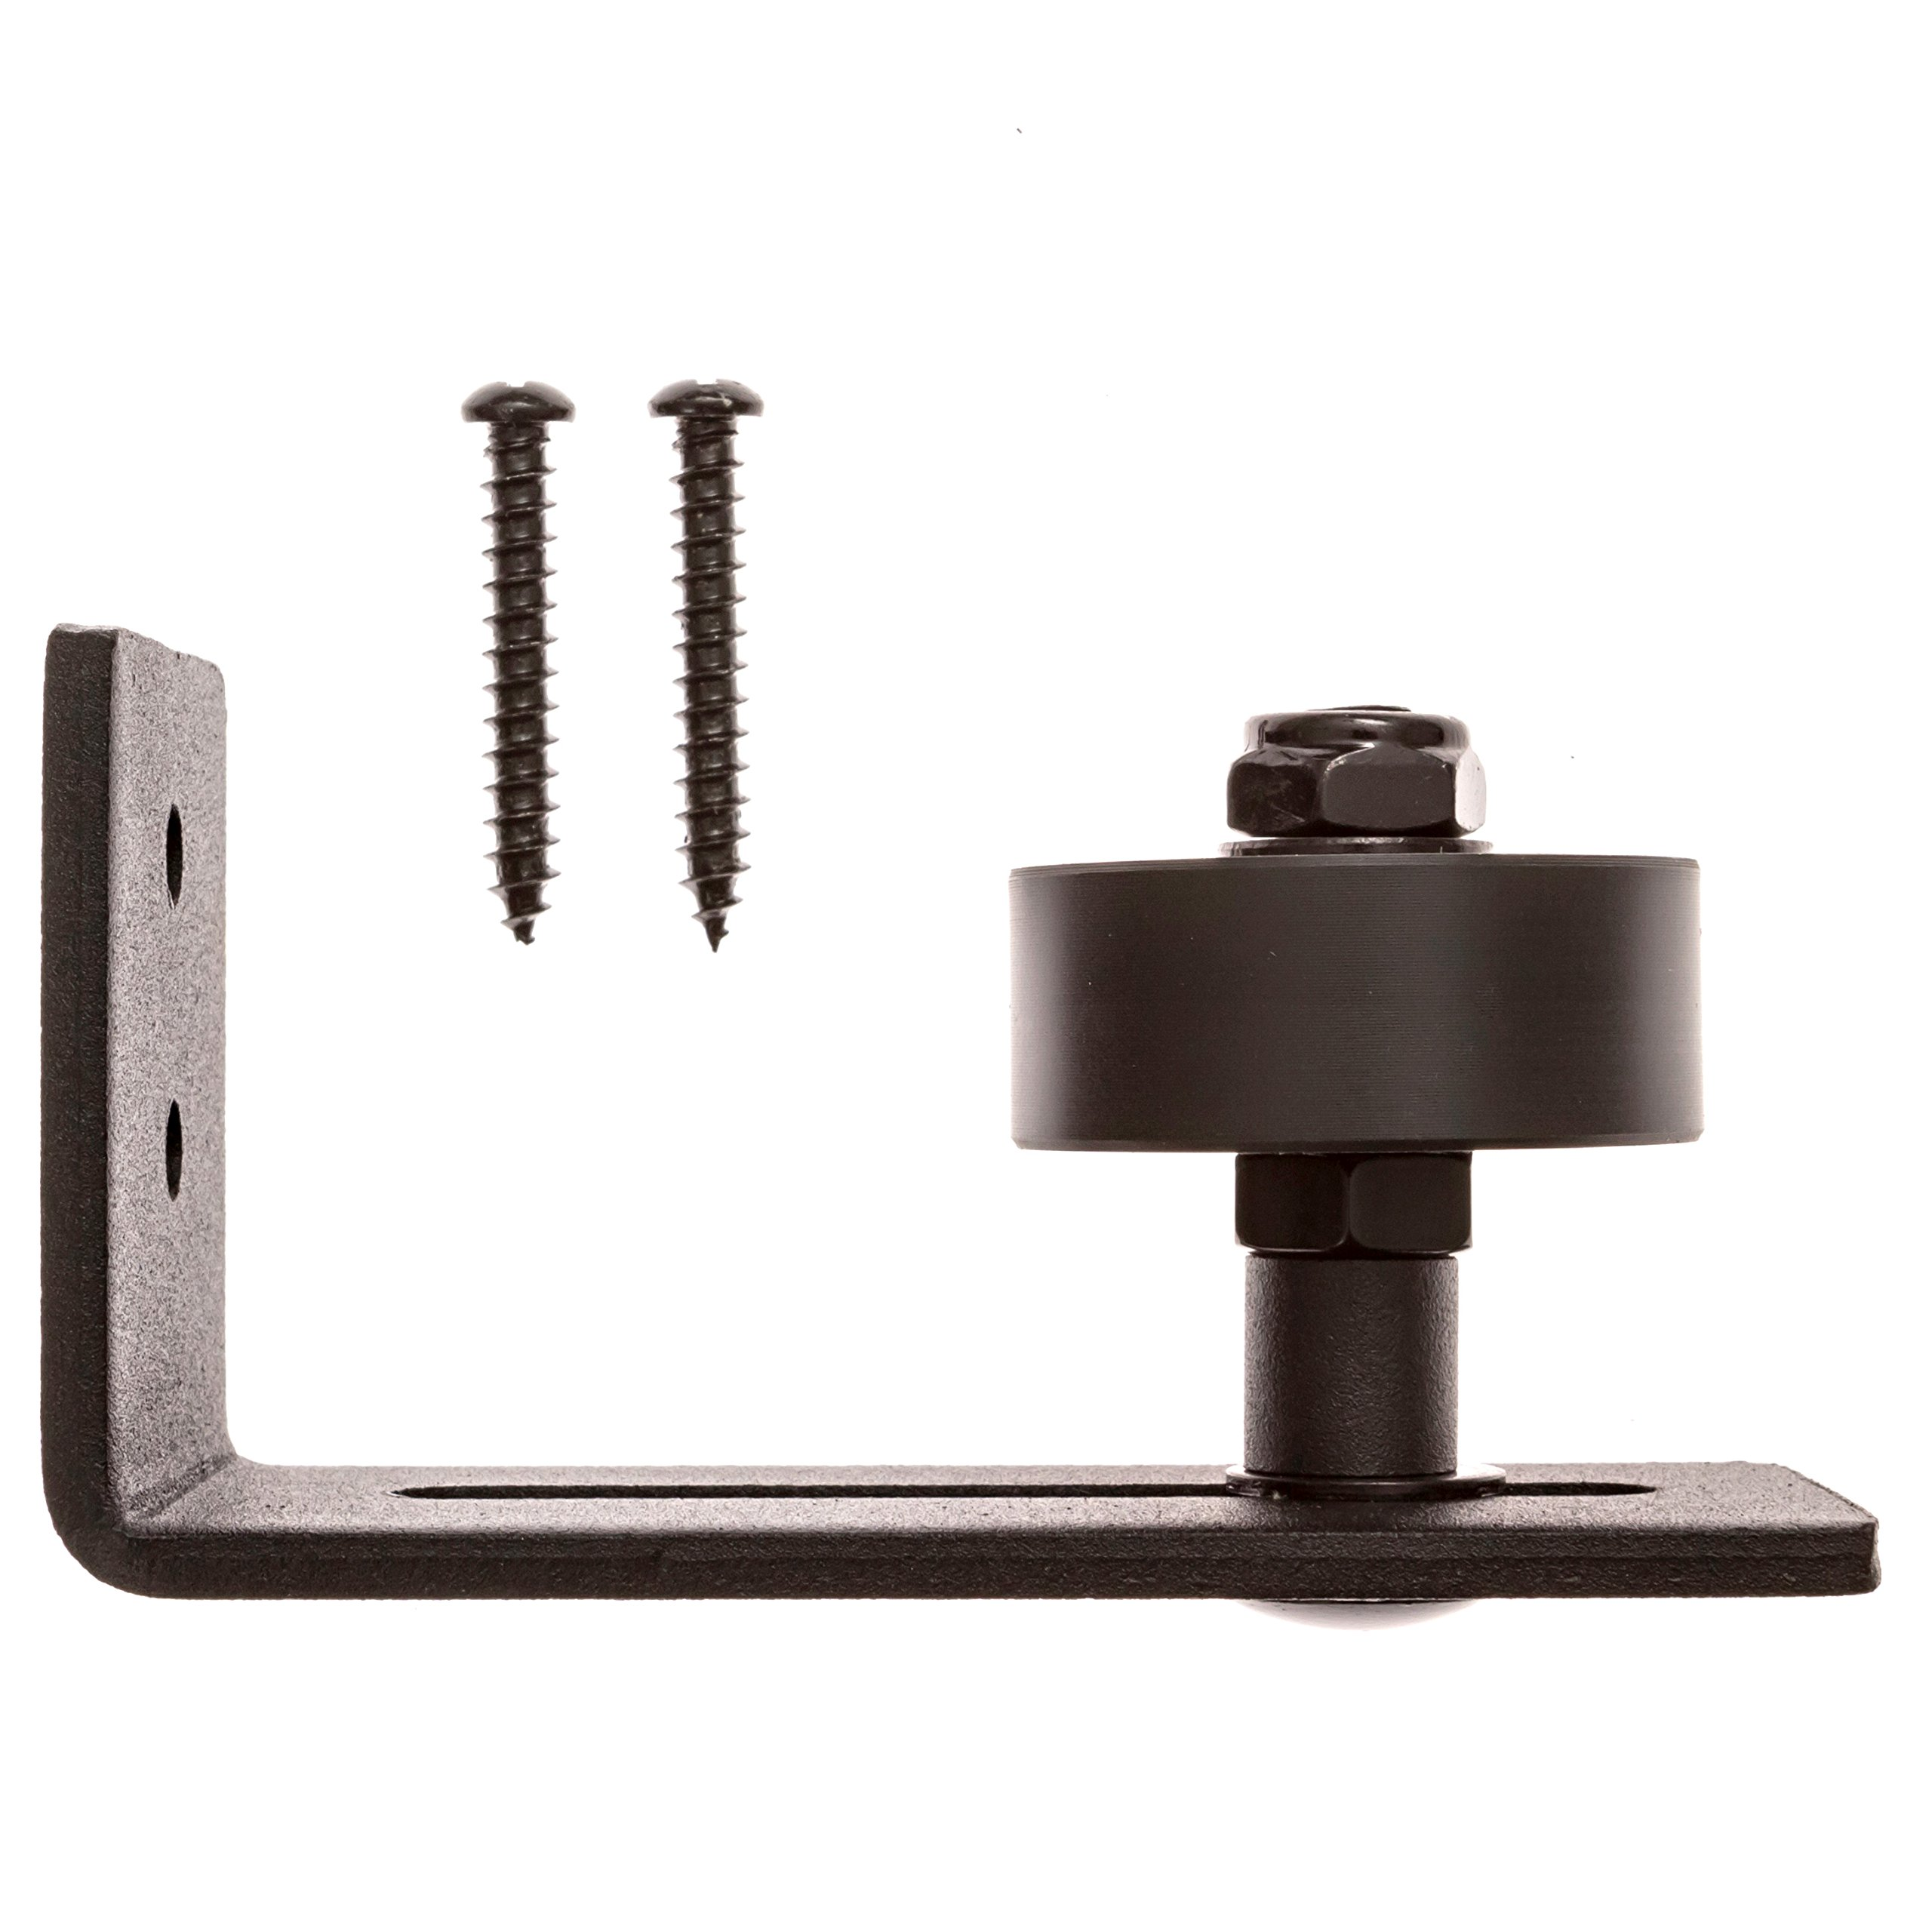 Adjustable Floor Guide for Sliding Barn Door - The Stay Roller Guide Sits Flush with Floor and Includes Ball Bearing for Smooth Roll, Screws for Installation, and Premium Quality Black Powder Coating